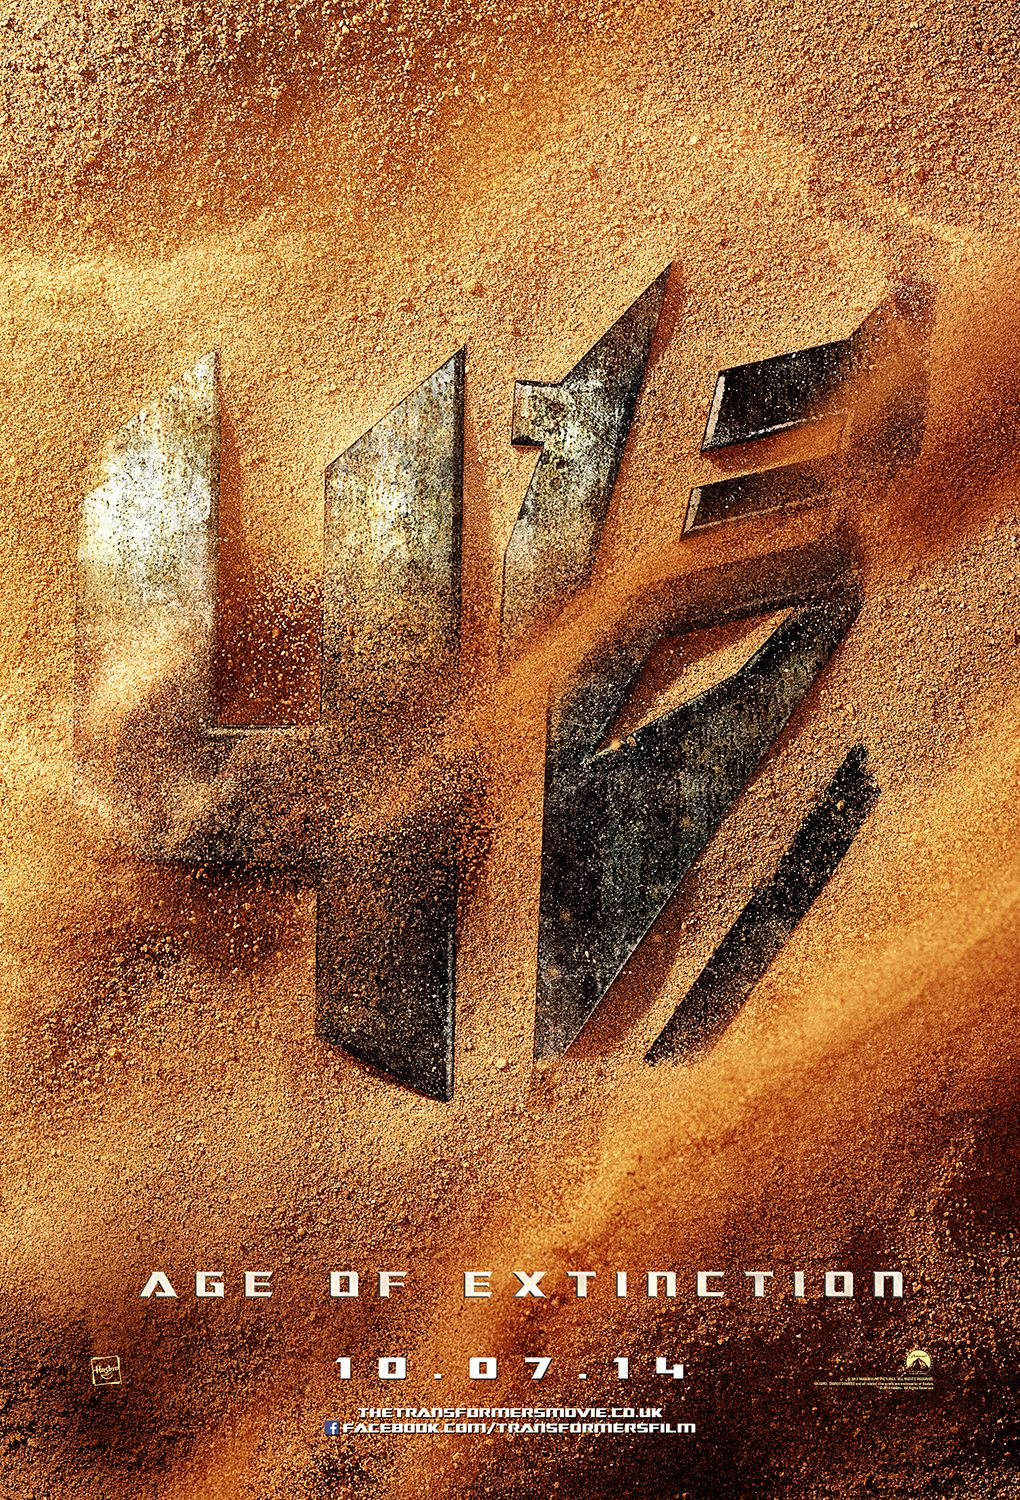 Transformers 4' title revealed